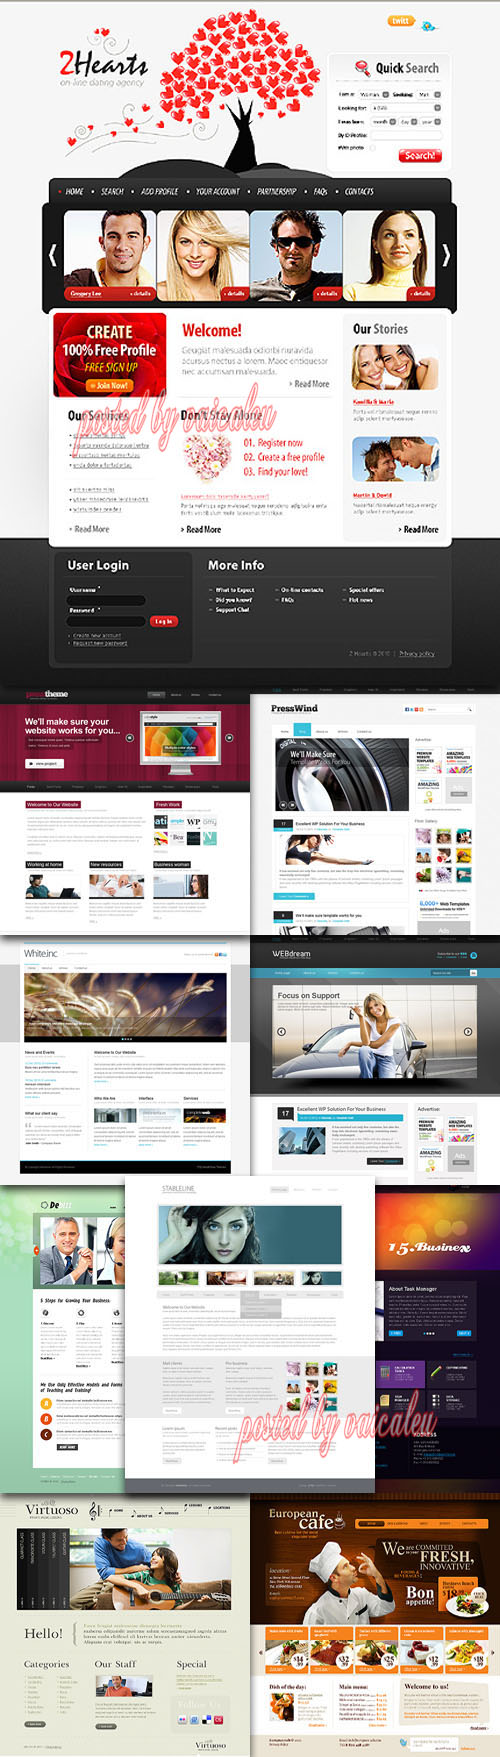 Templates Website Dynamic CSS in March P.2